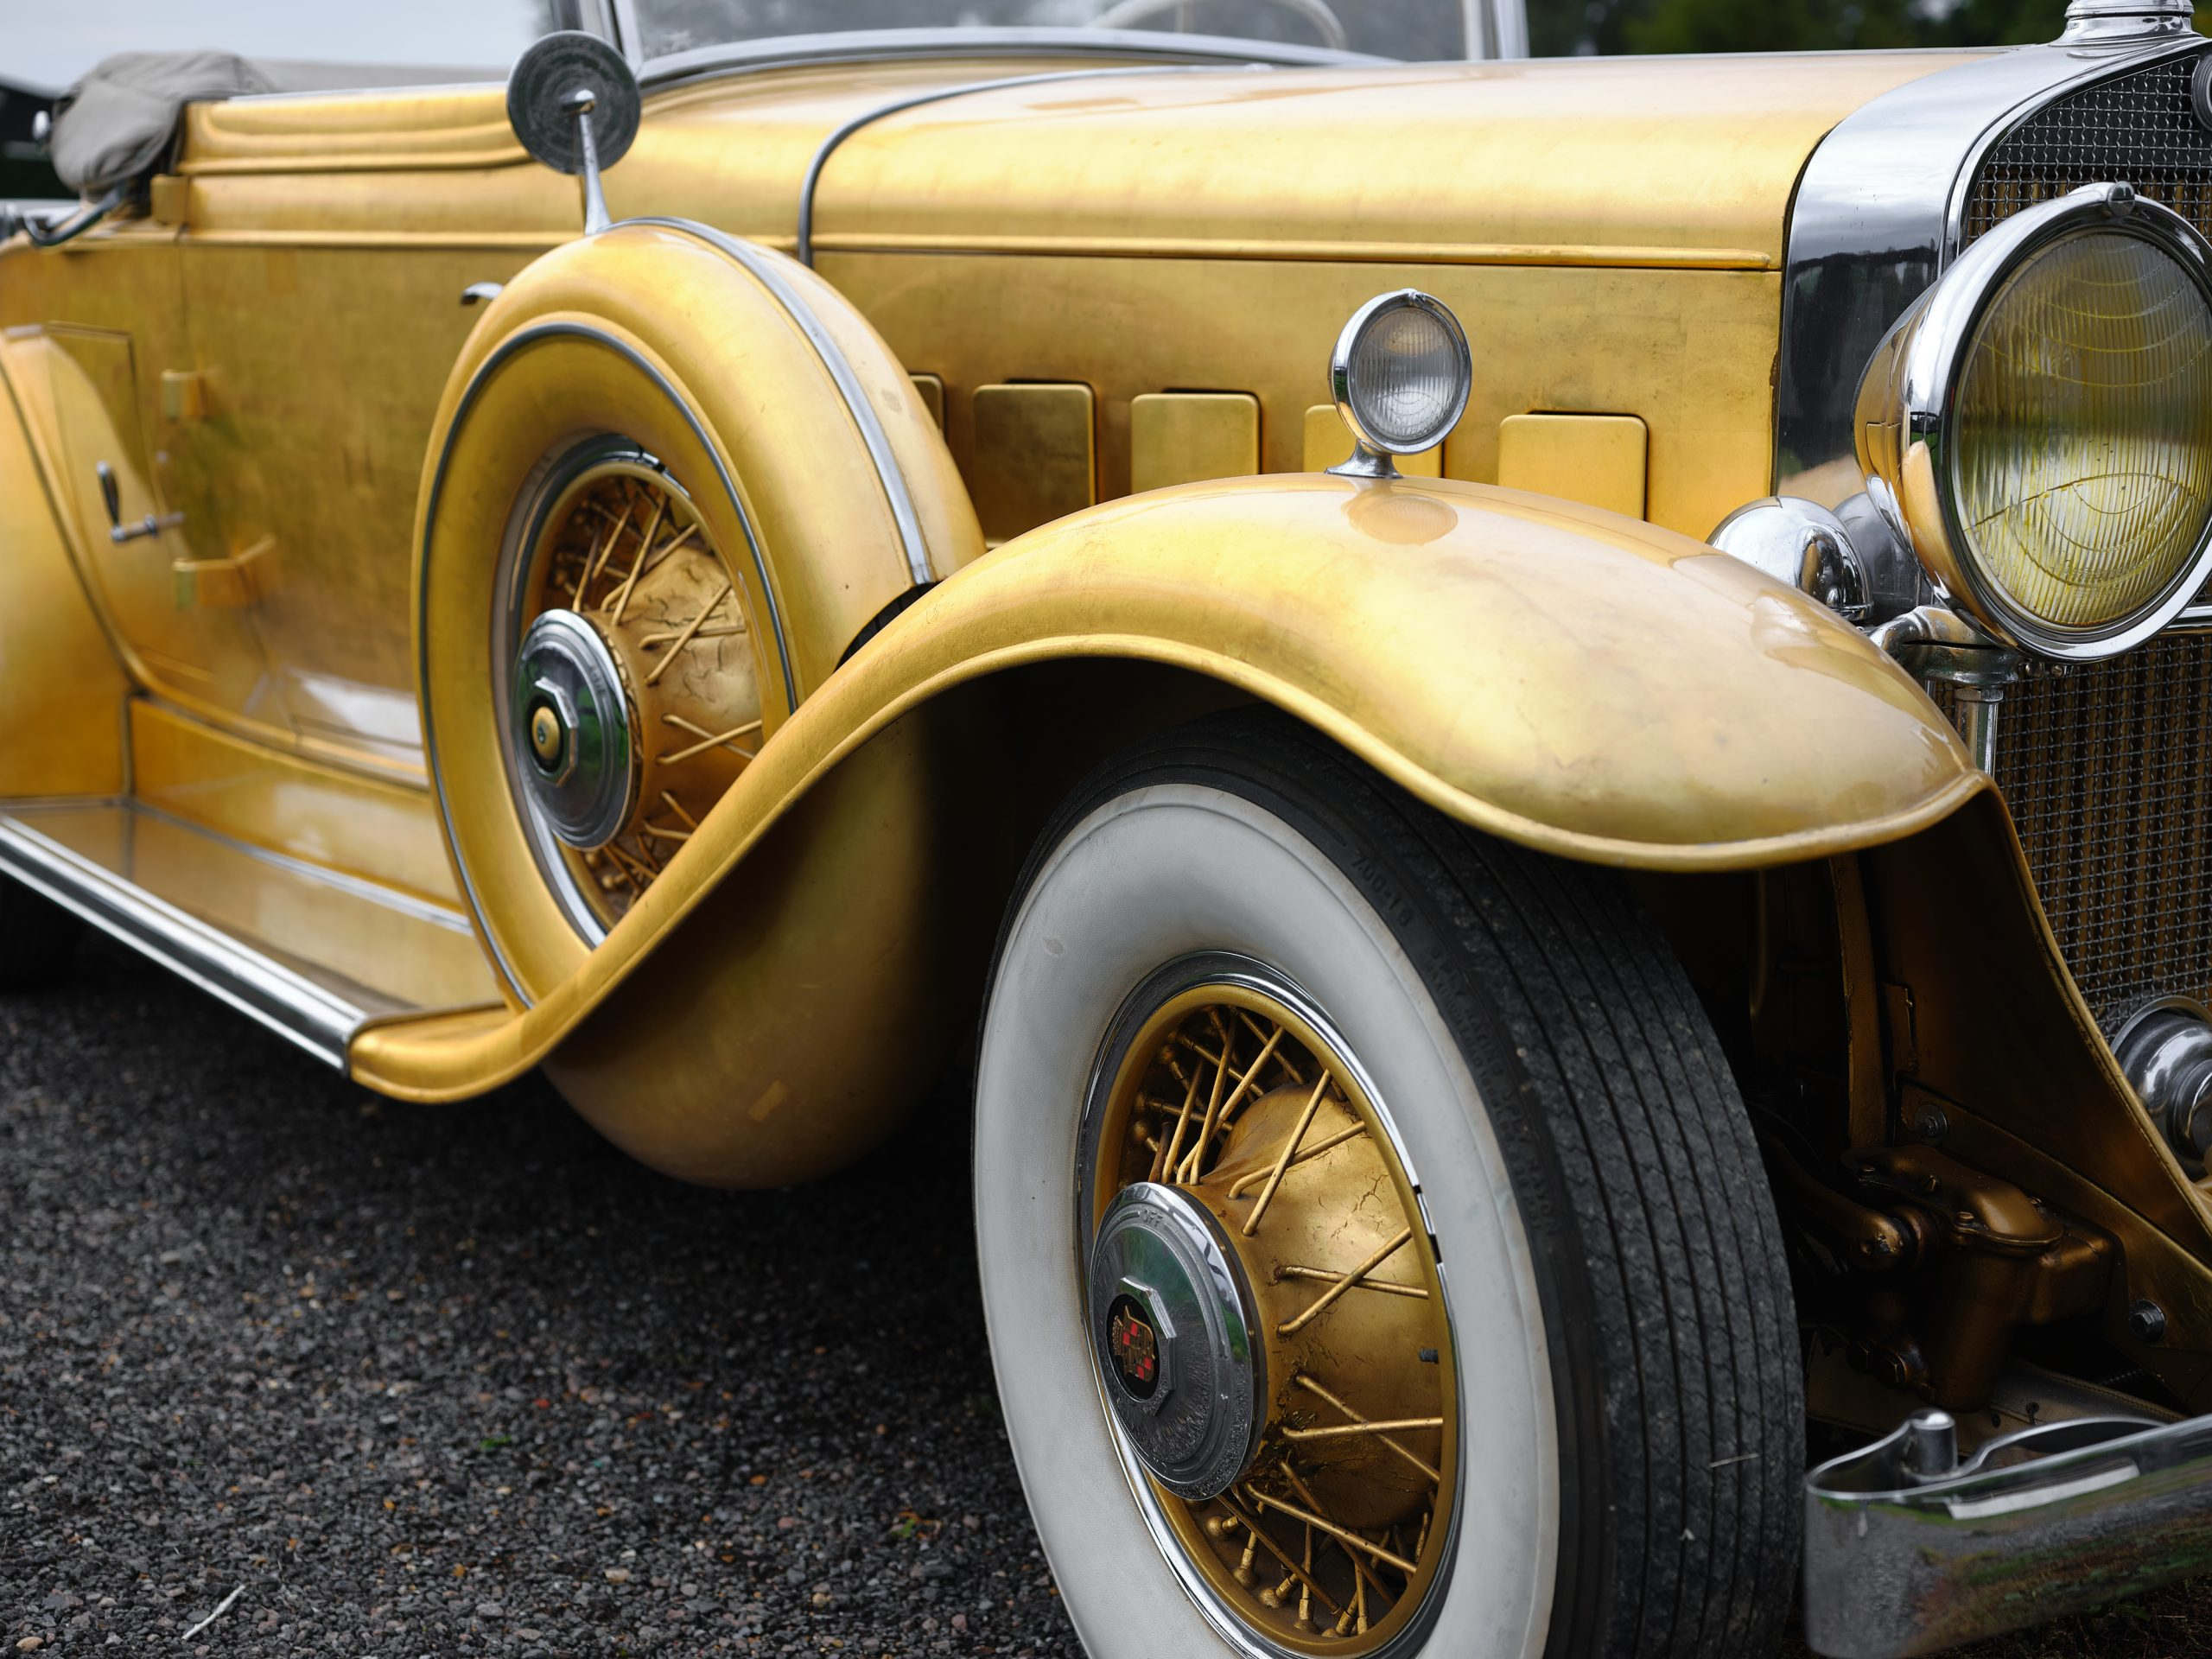 1931 Cadillac V-8 Convertible Coupe front quarter